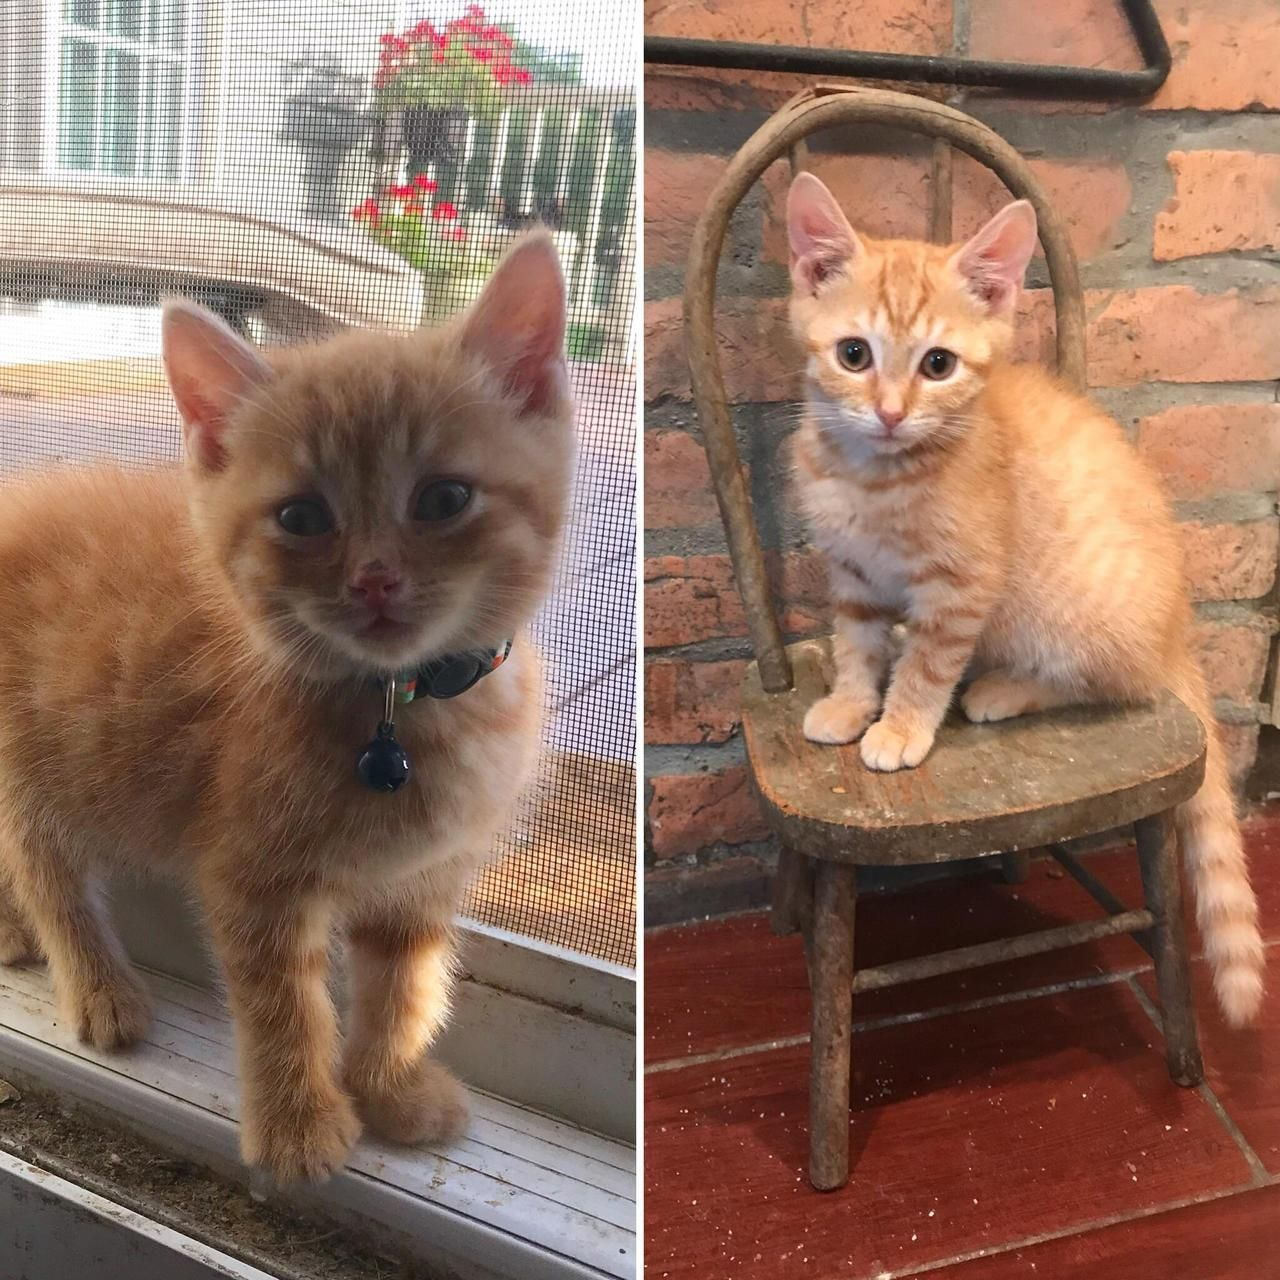 Before And After Hank Is Now 3 Months Old And Loves Sitting In His Favorite Spot Close To The Food Bowl Beautiful Kittens Kittens And Puppies Kittens Cutest